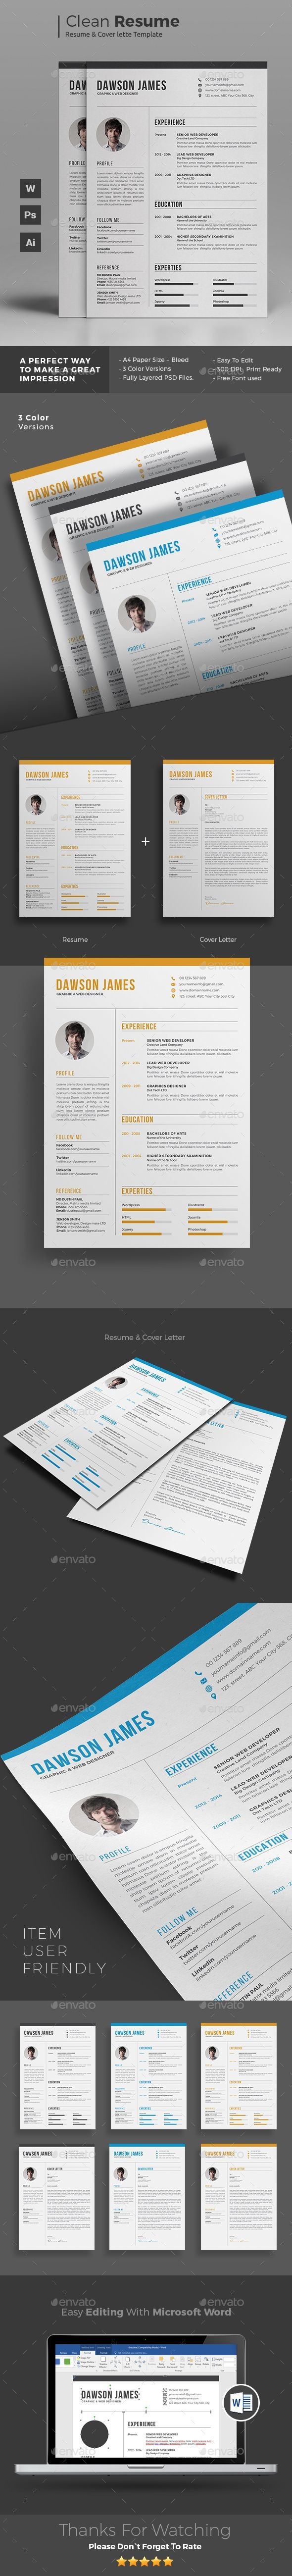 Resume Pdf Or Word Download%0A Resume Template PSD  AI Illustrator  MS Word  Download here  https